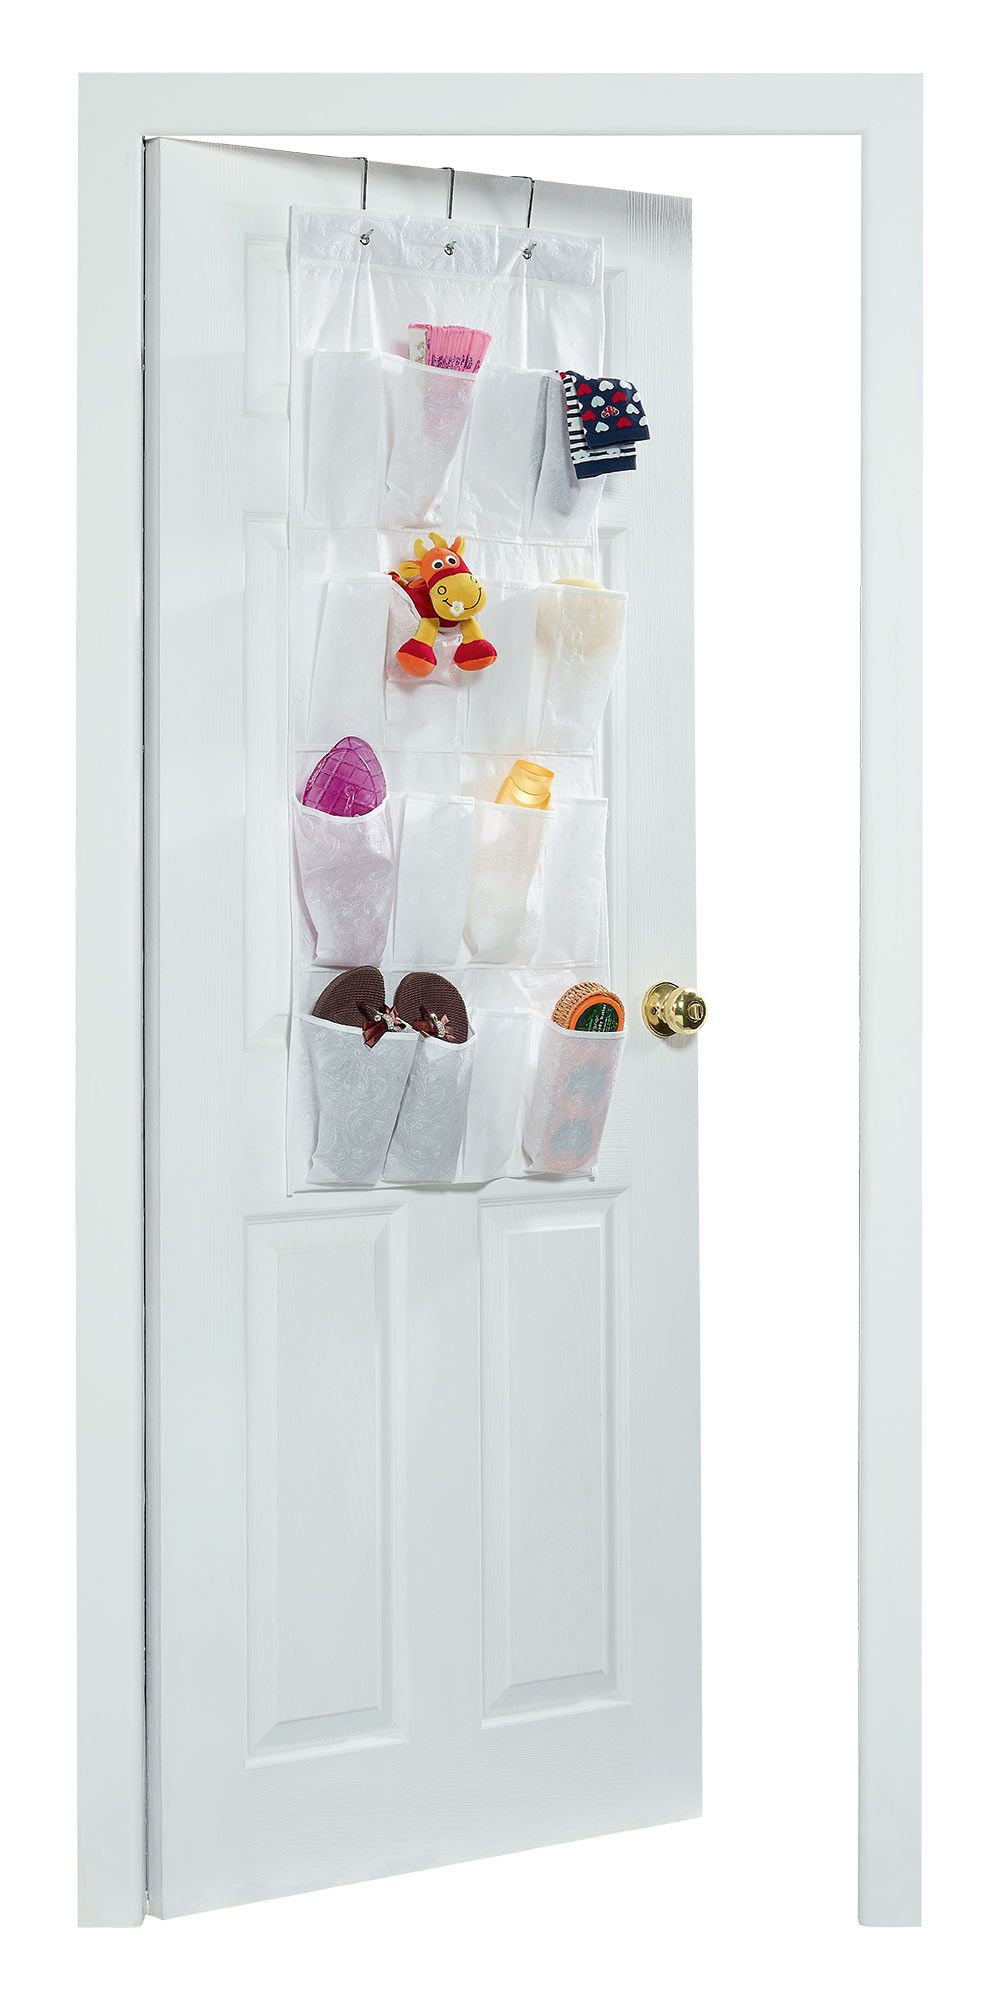 A Handy 16 Pocket Over The Door Organiser In A Stylish White